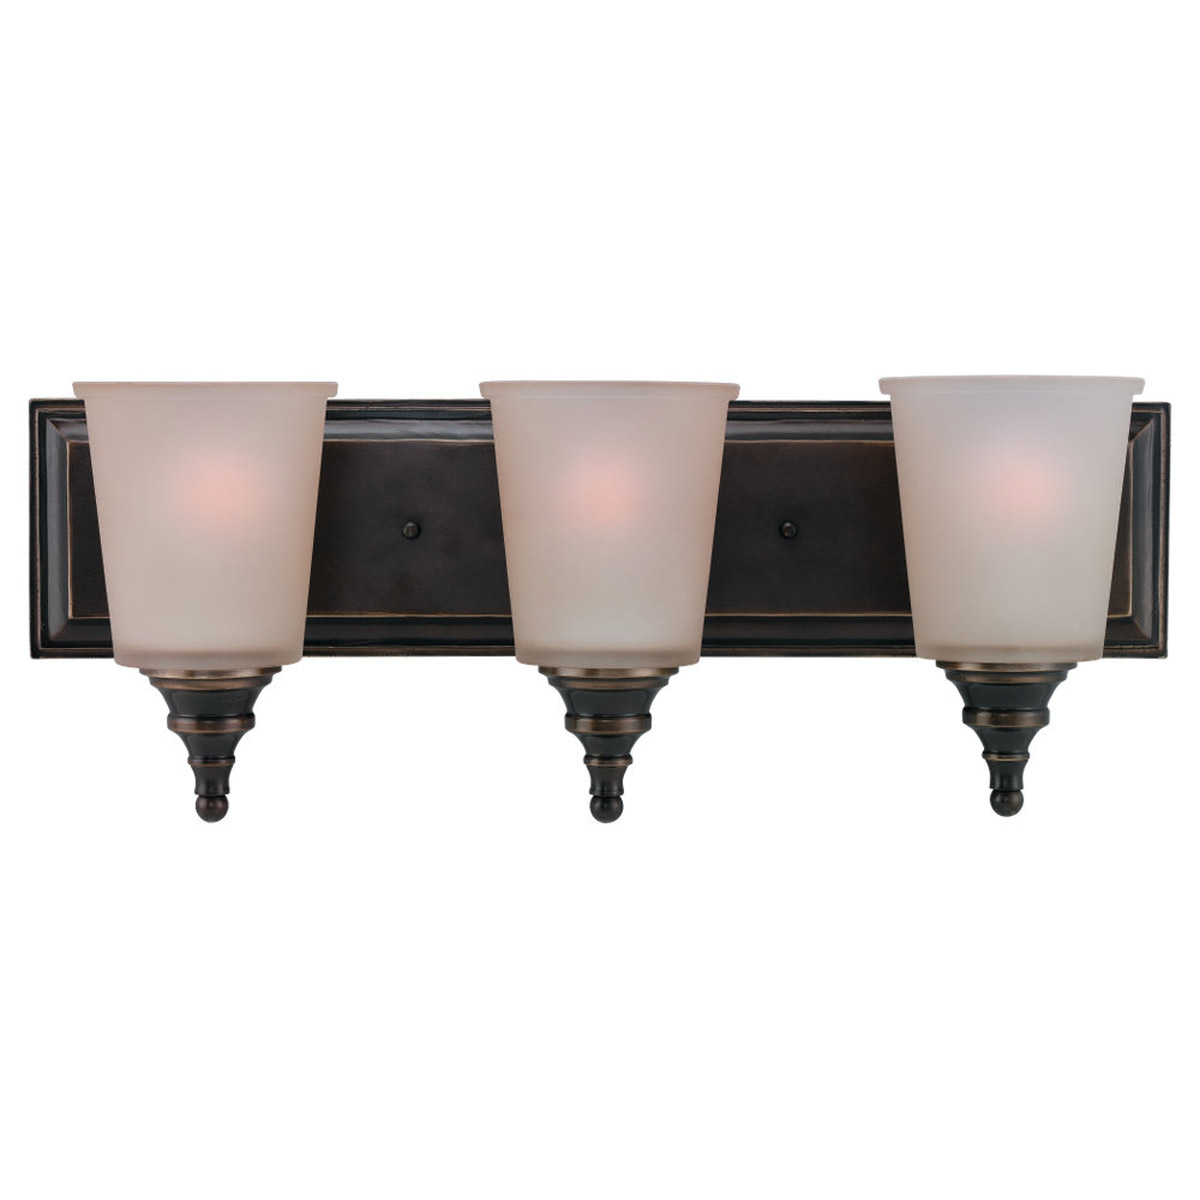 Sea Gull Lighting Warwick 3 Light Bath Vanity in Vintage Bronze 44331-825 photo